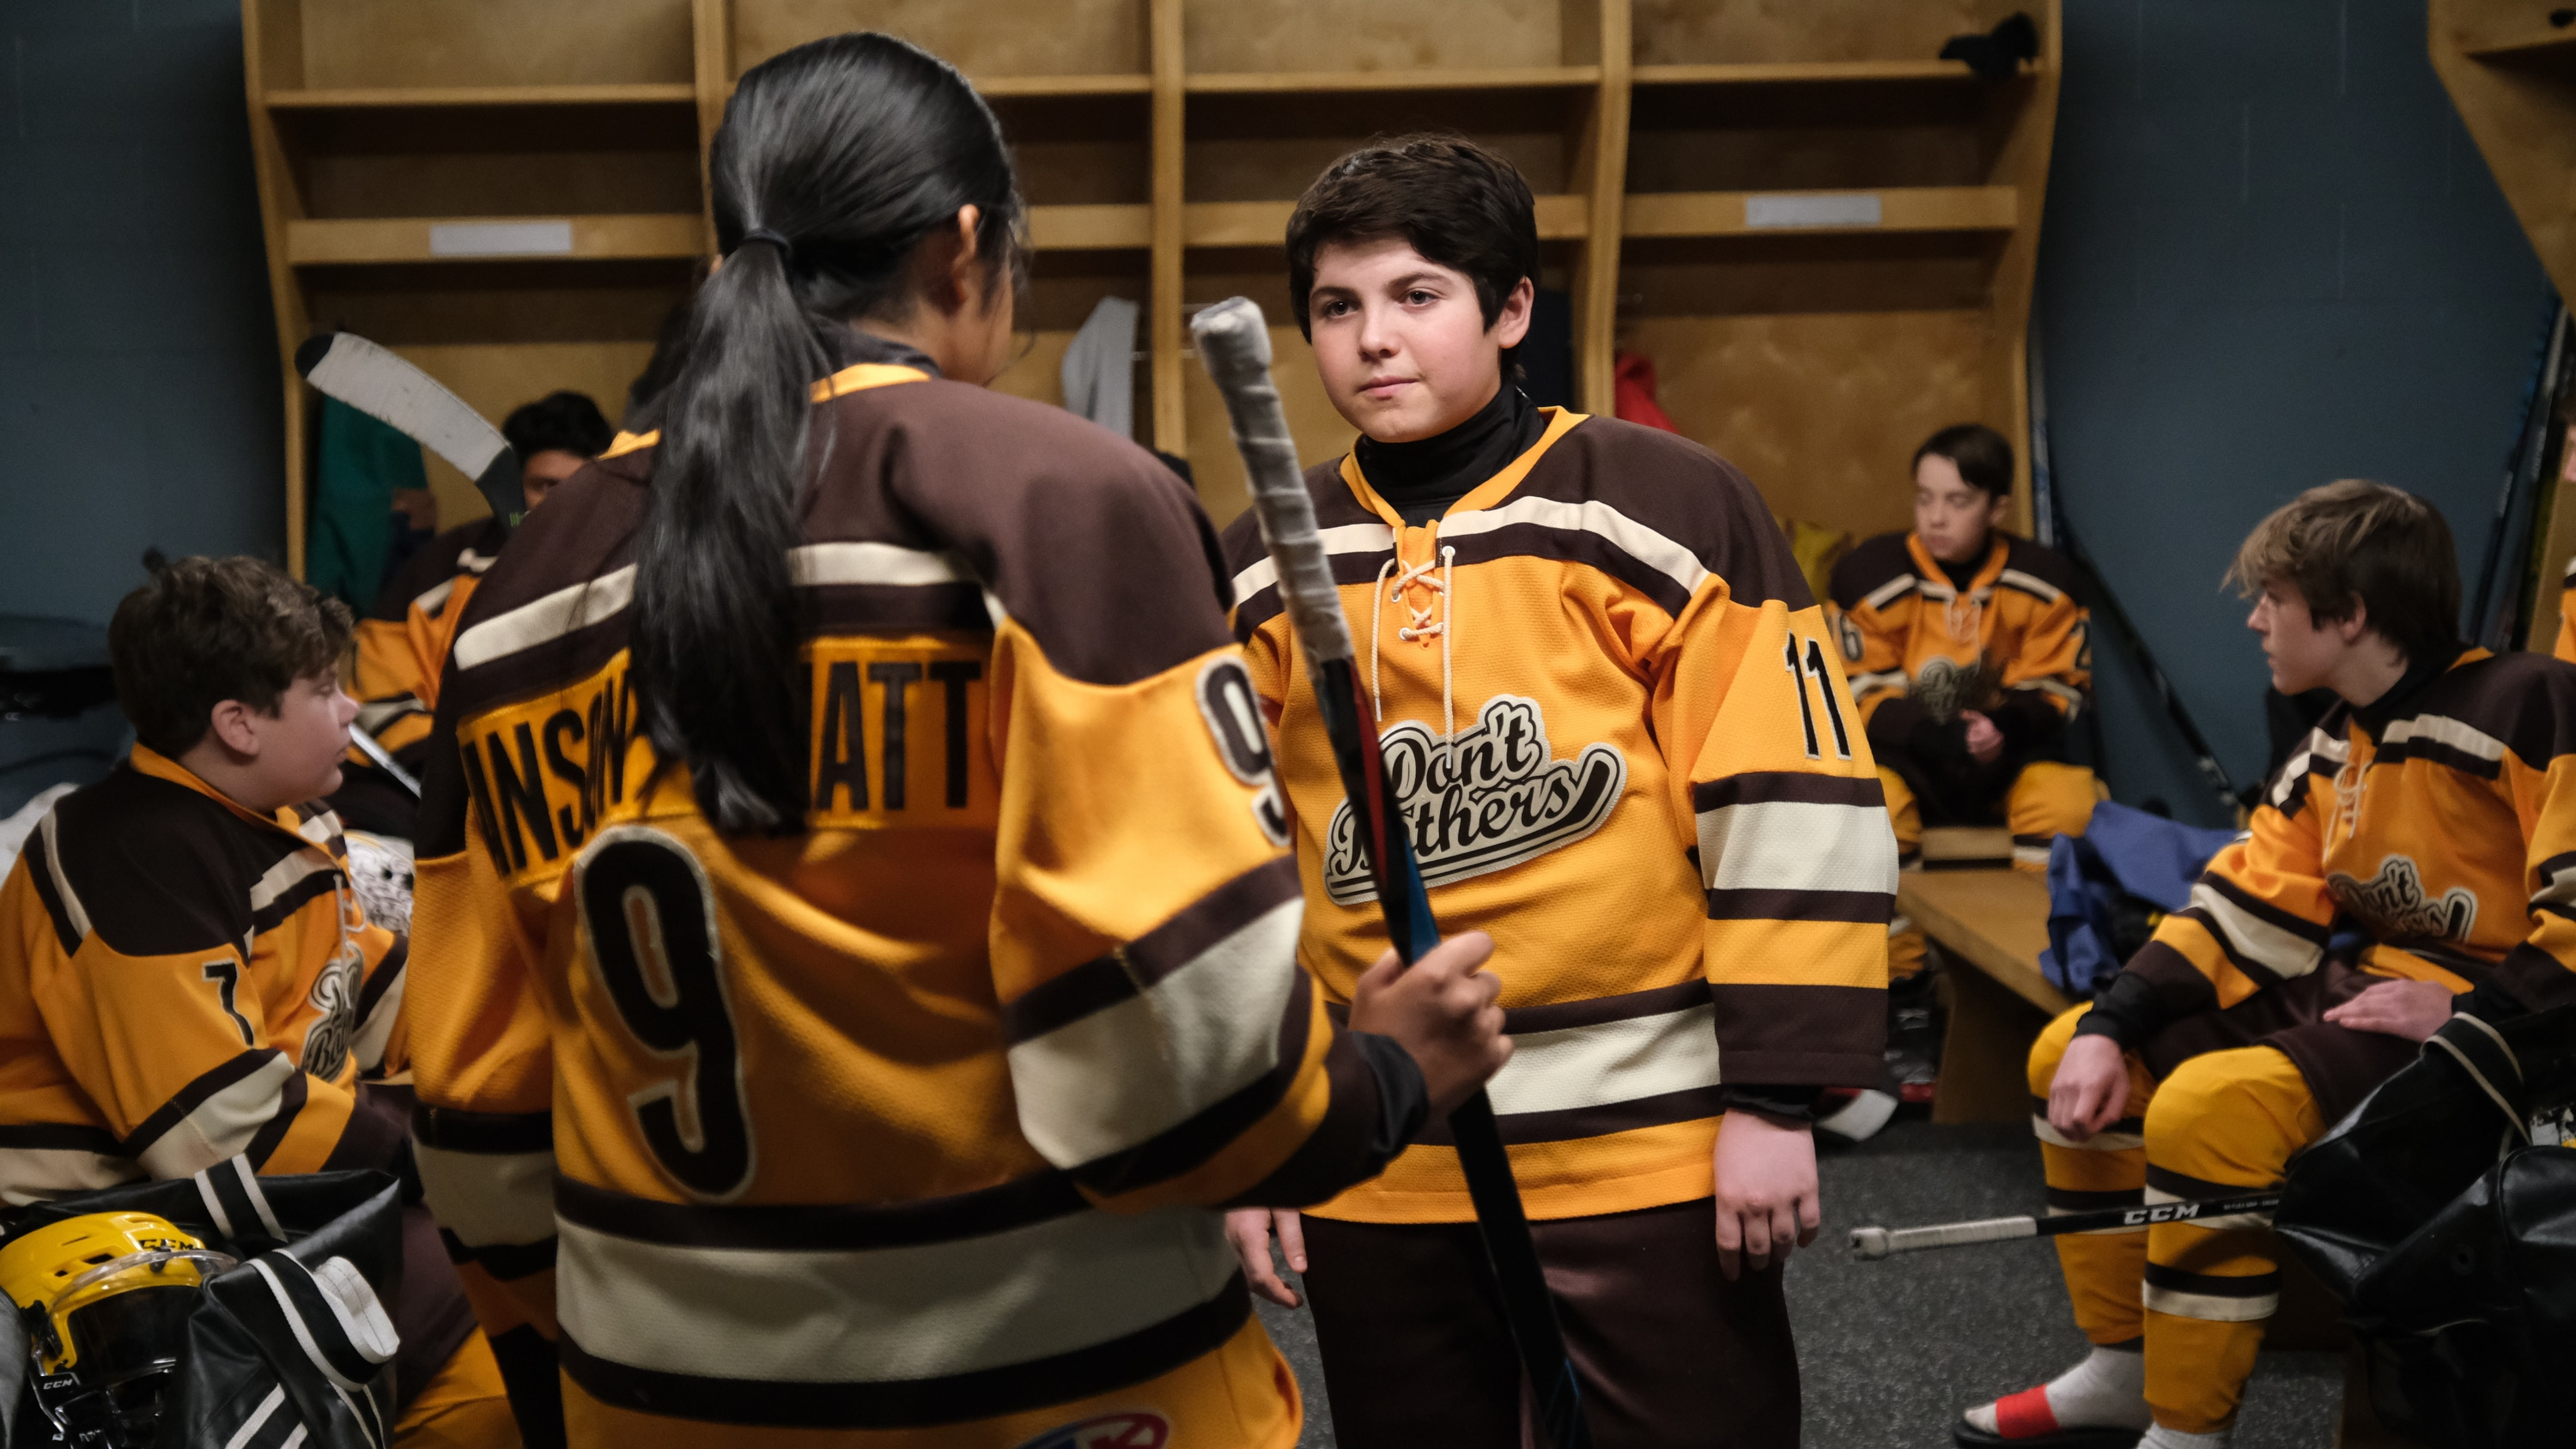 """THE MIGHTY DUCKS: GAME CHANGERS - """"State of Play"""" - The Don't Bothers are forced to choose what's really important, as they face the Ducks at States. (Disney/Liane Hentscher) BRADY NOON"""